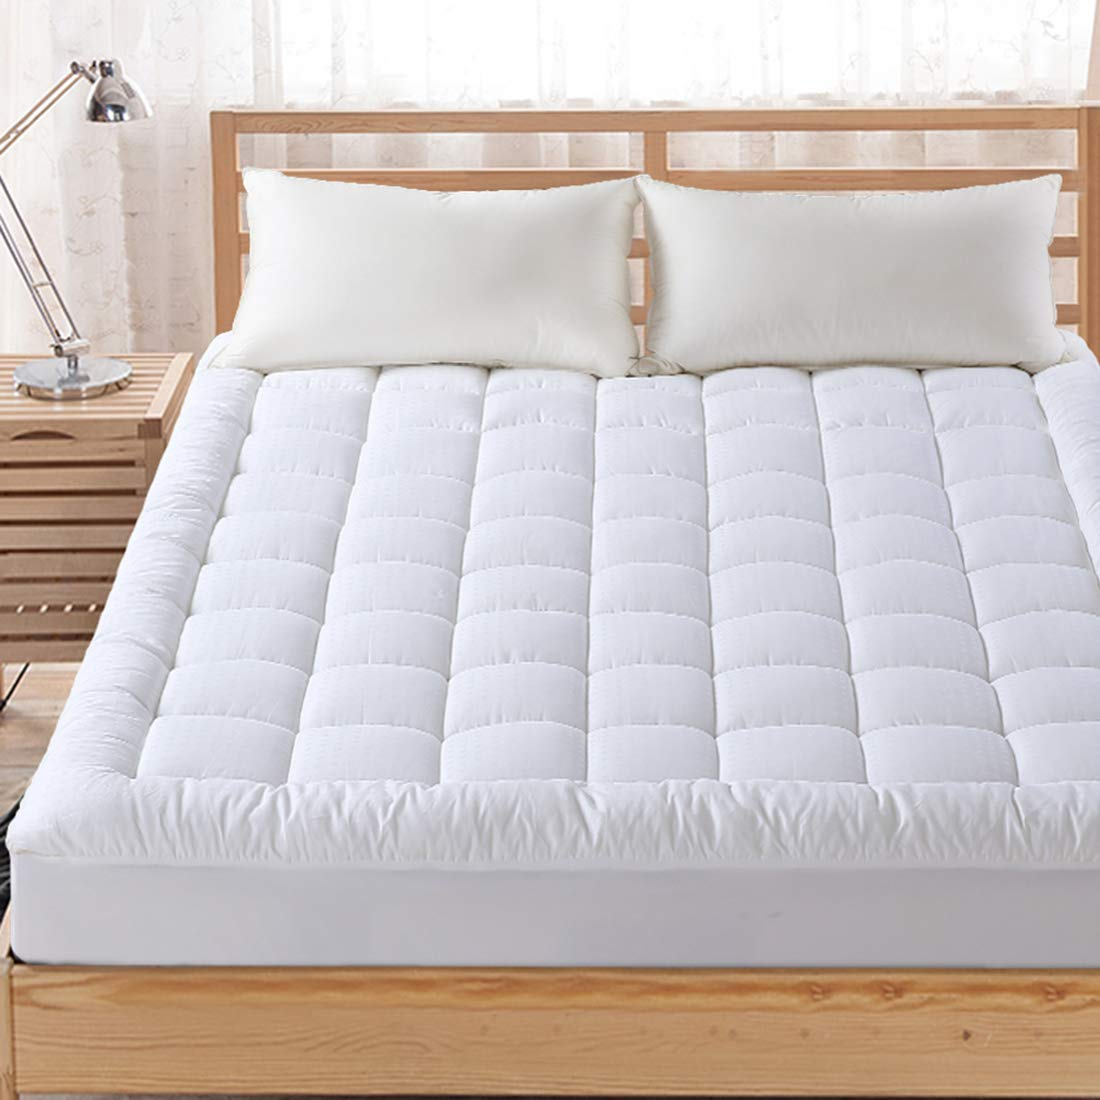 4. FAIRYLAND Twin XL Mattress Topper